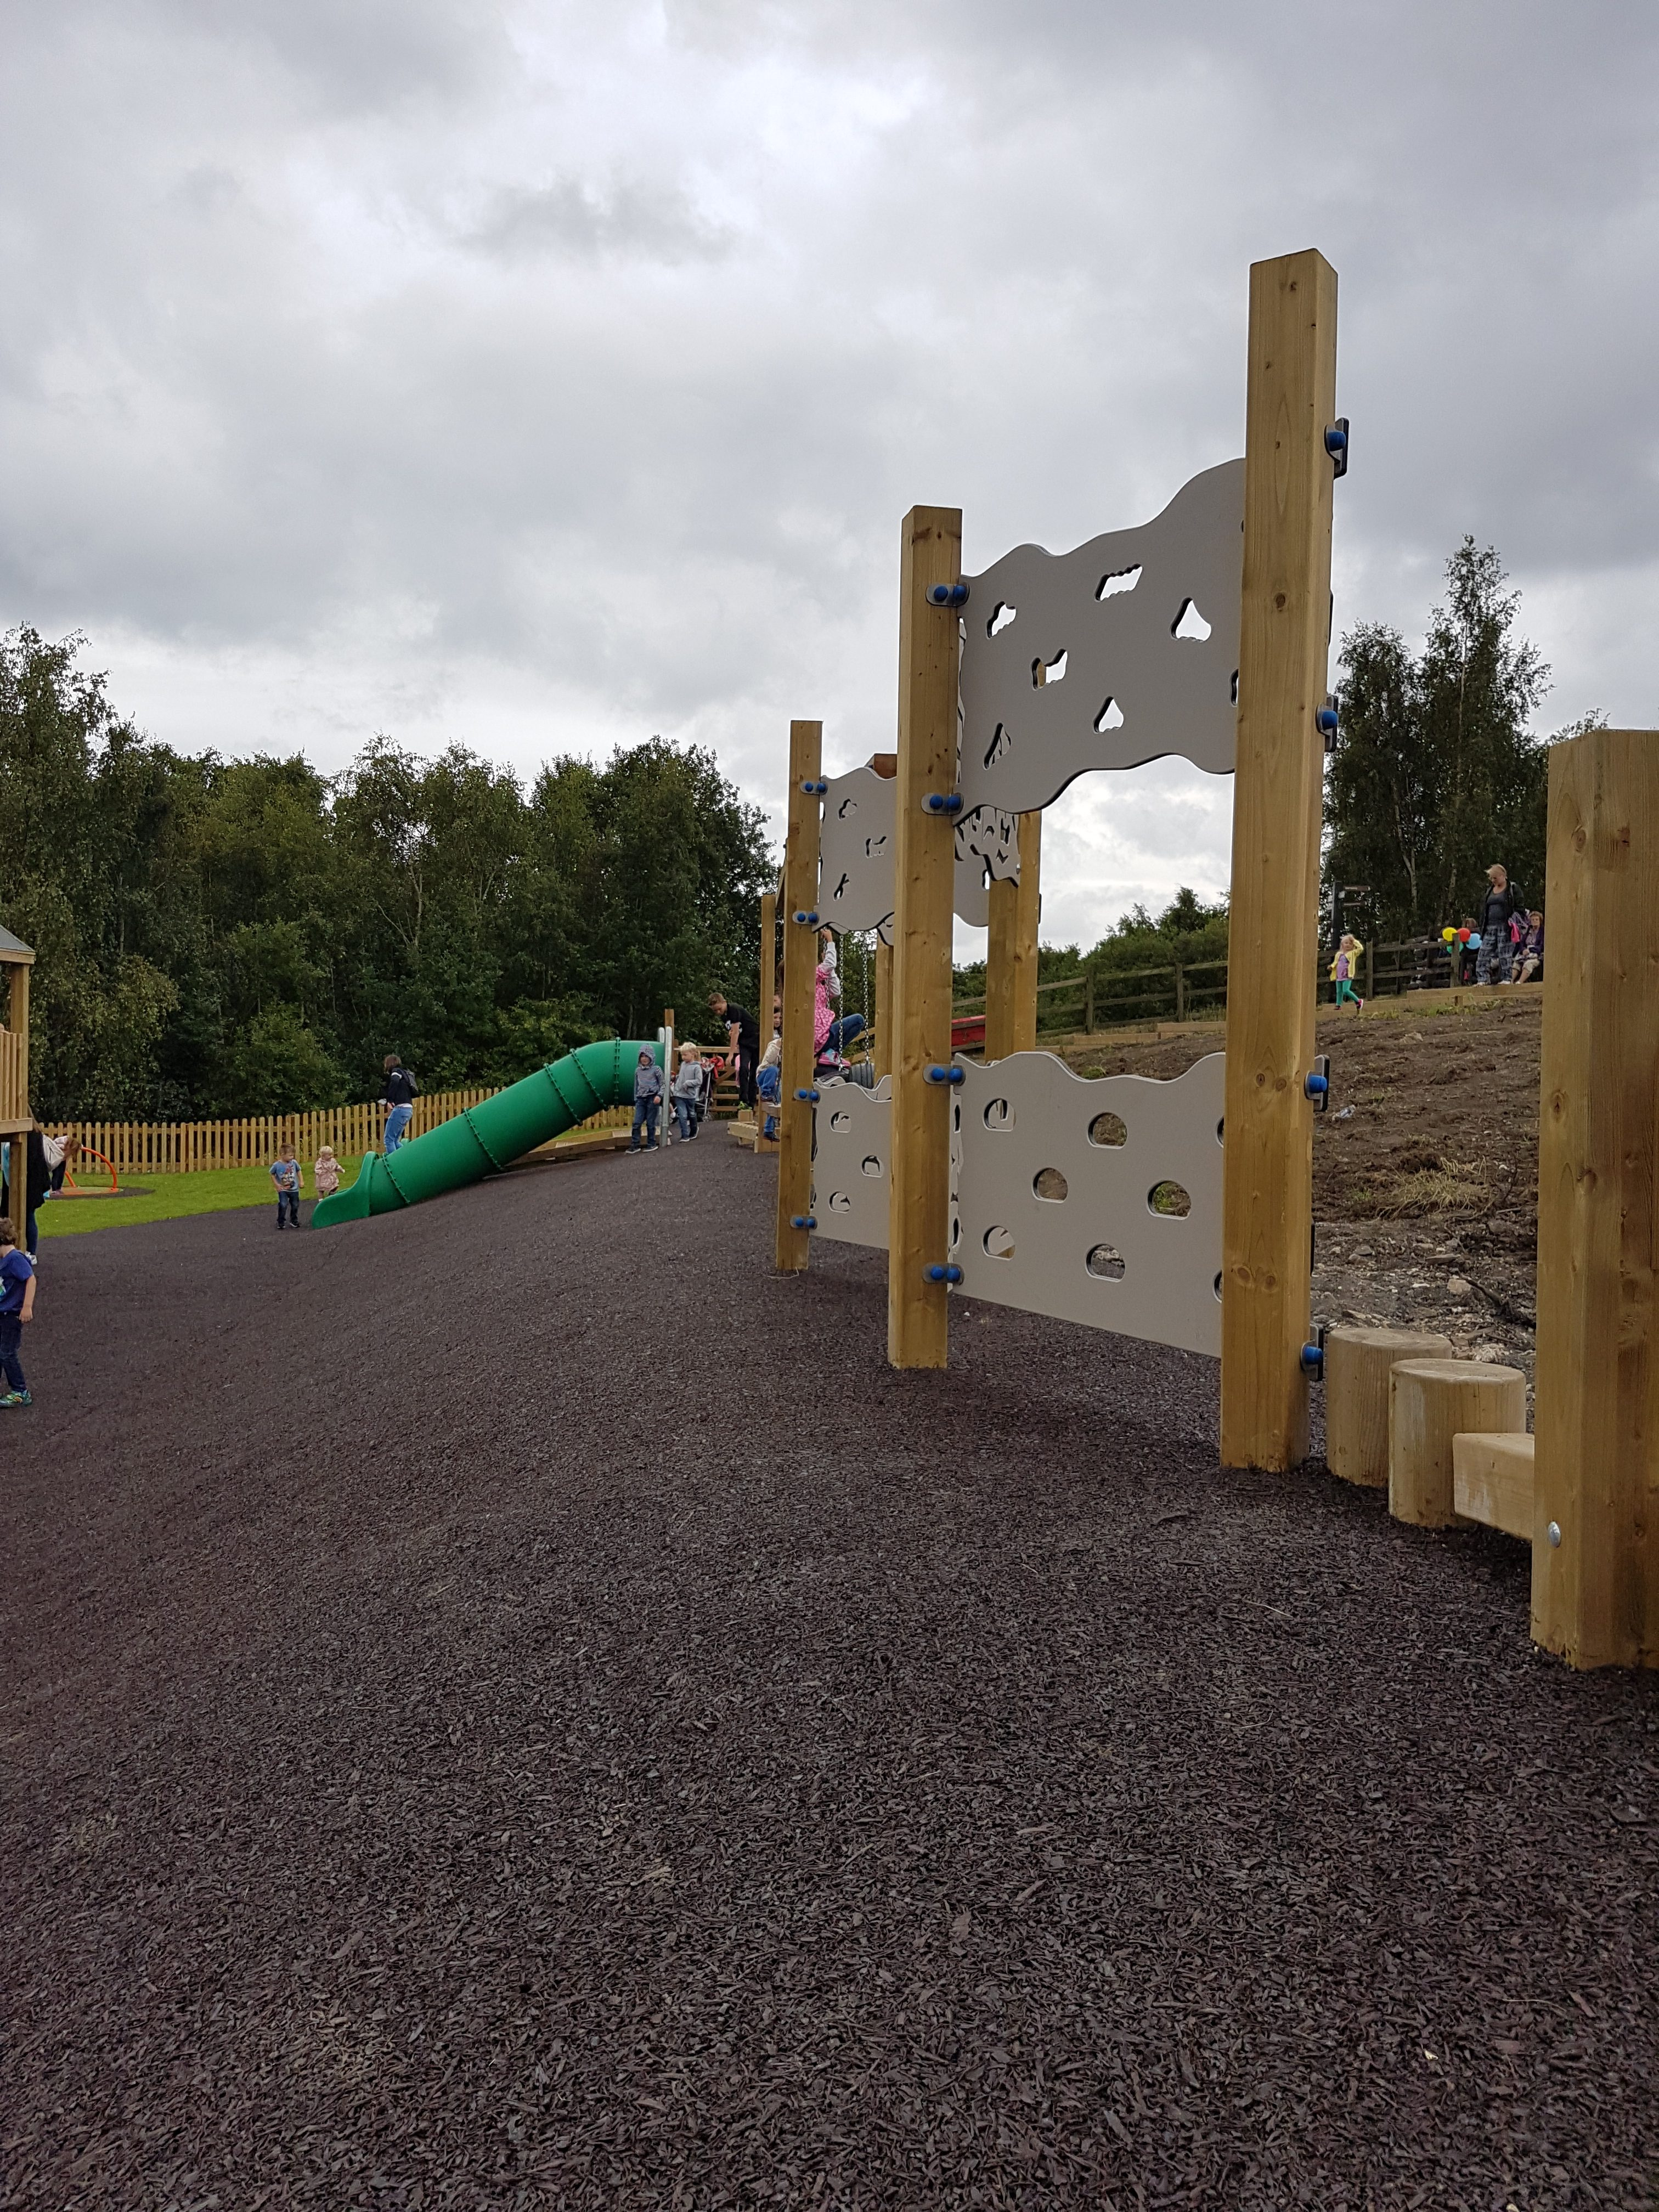 National coal mining museum play area